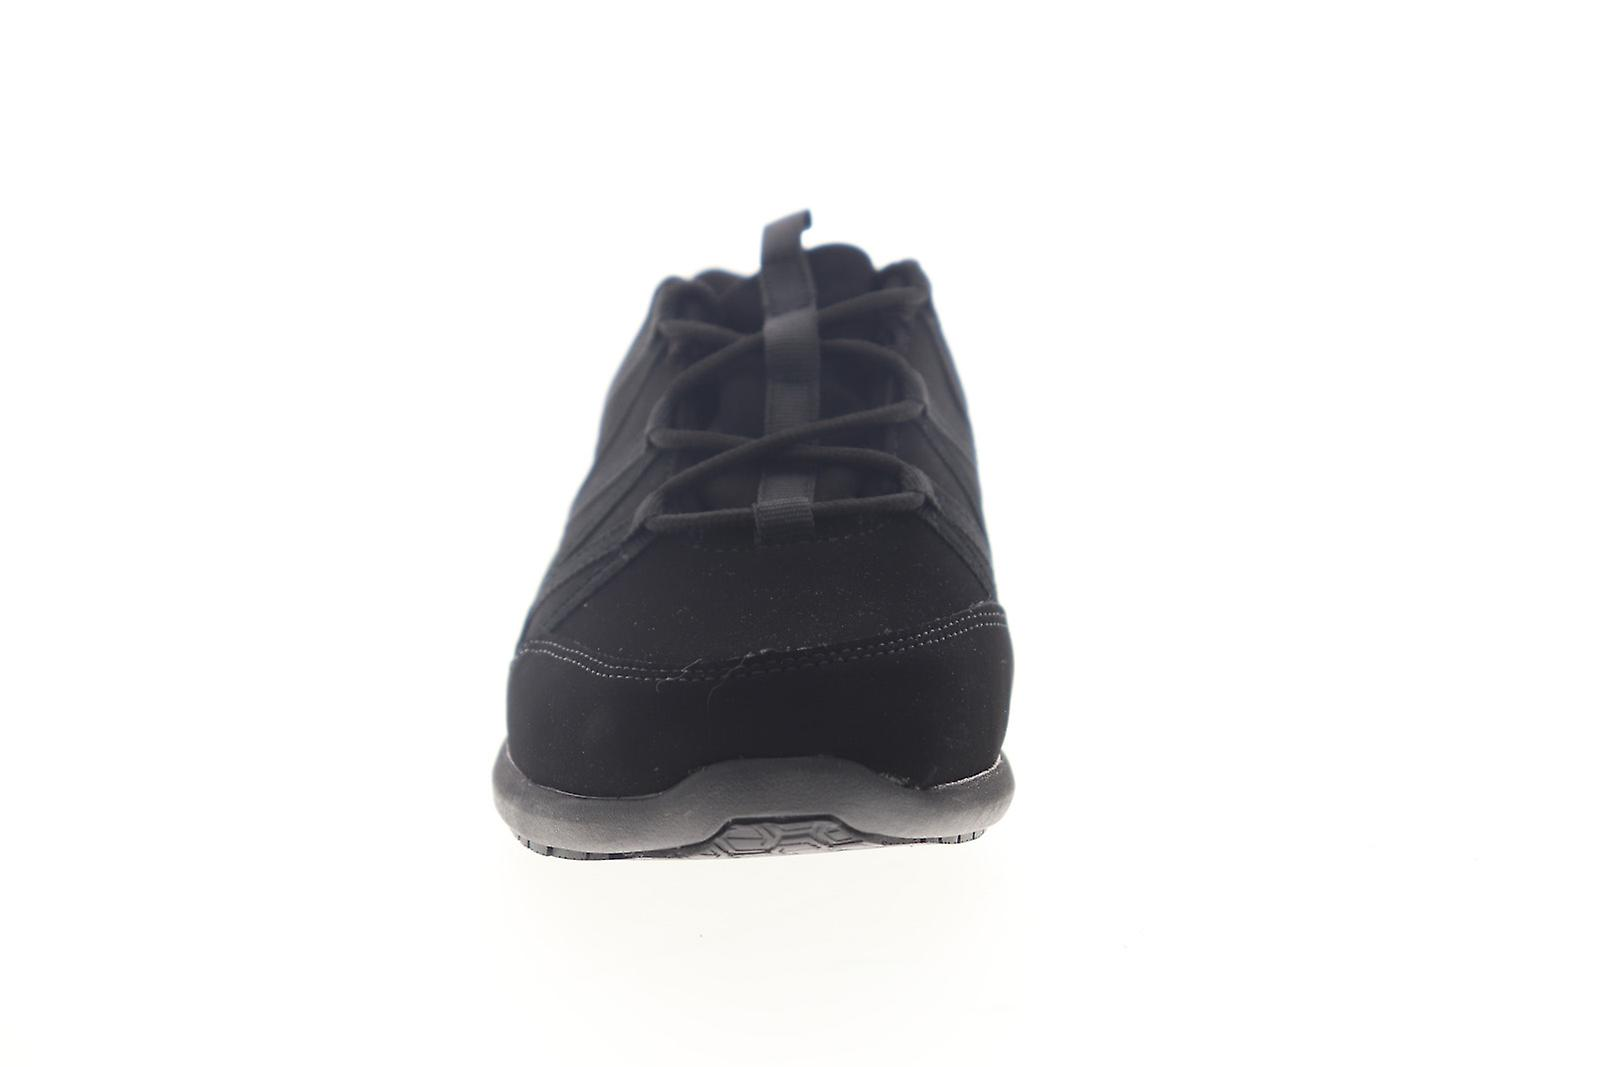 Emeril Lagasse Conti Nubuck Womens Black Wide 2e Leather Low Top Sneakers Shoes